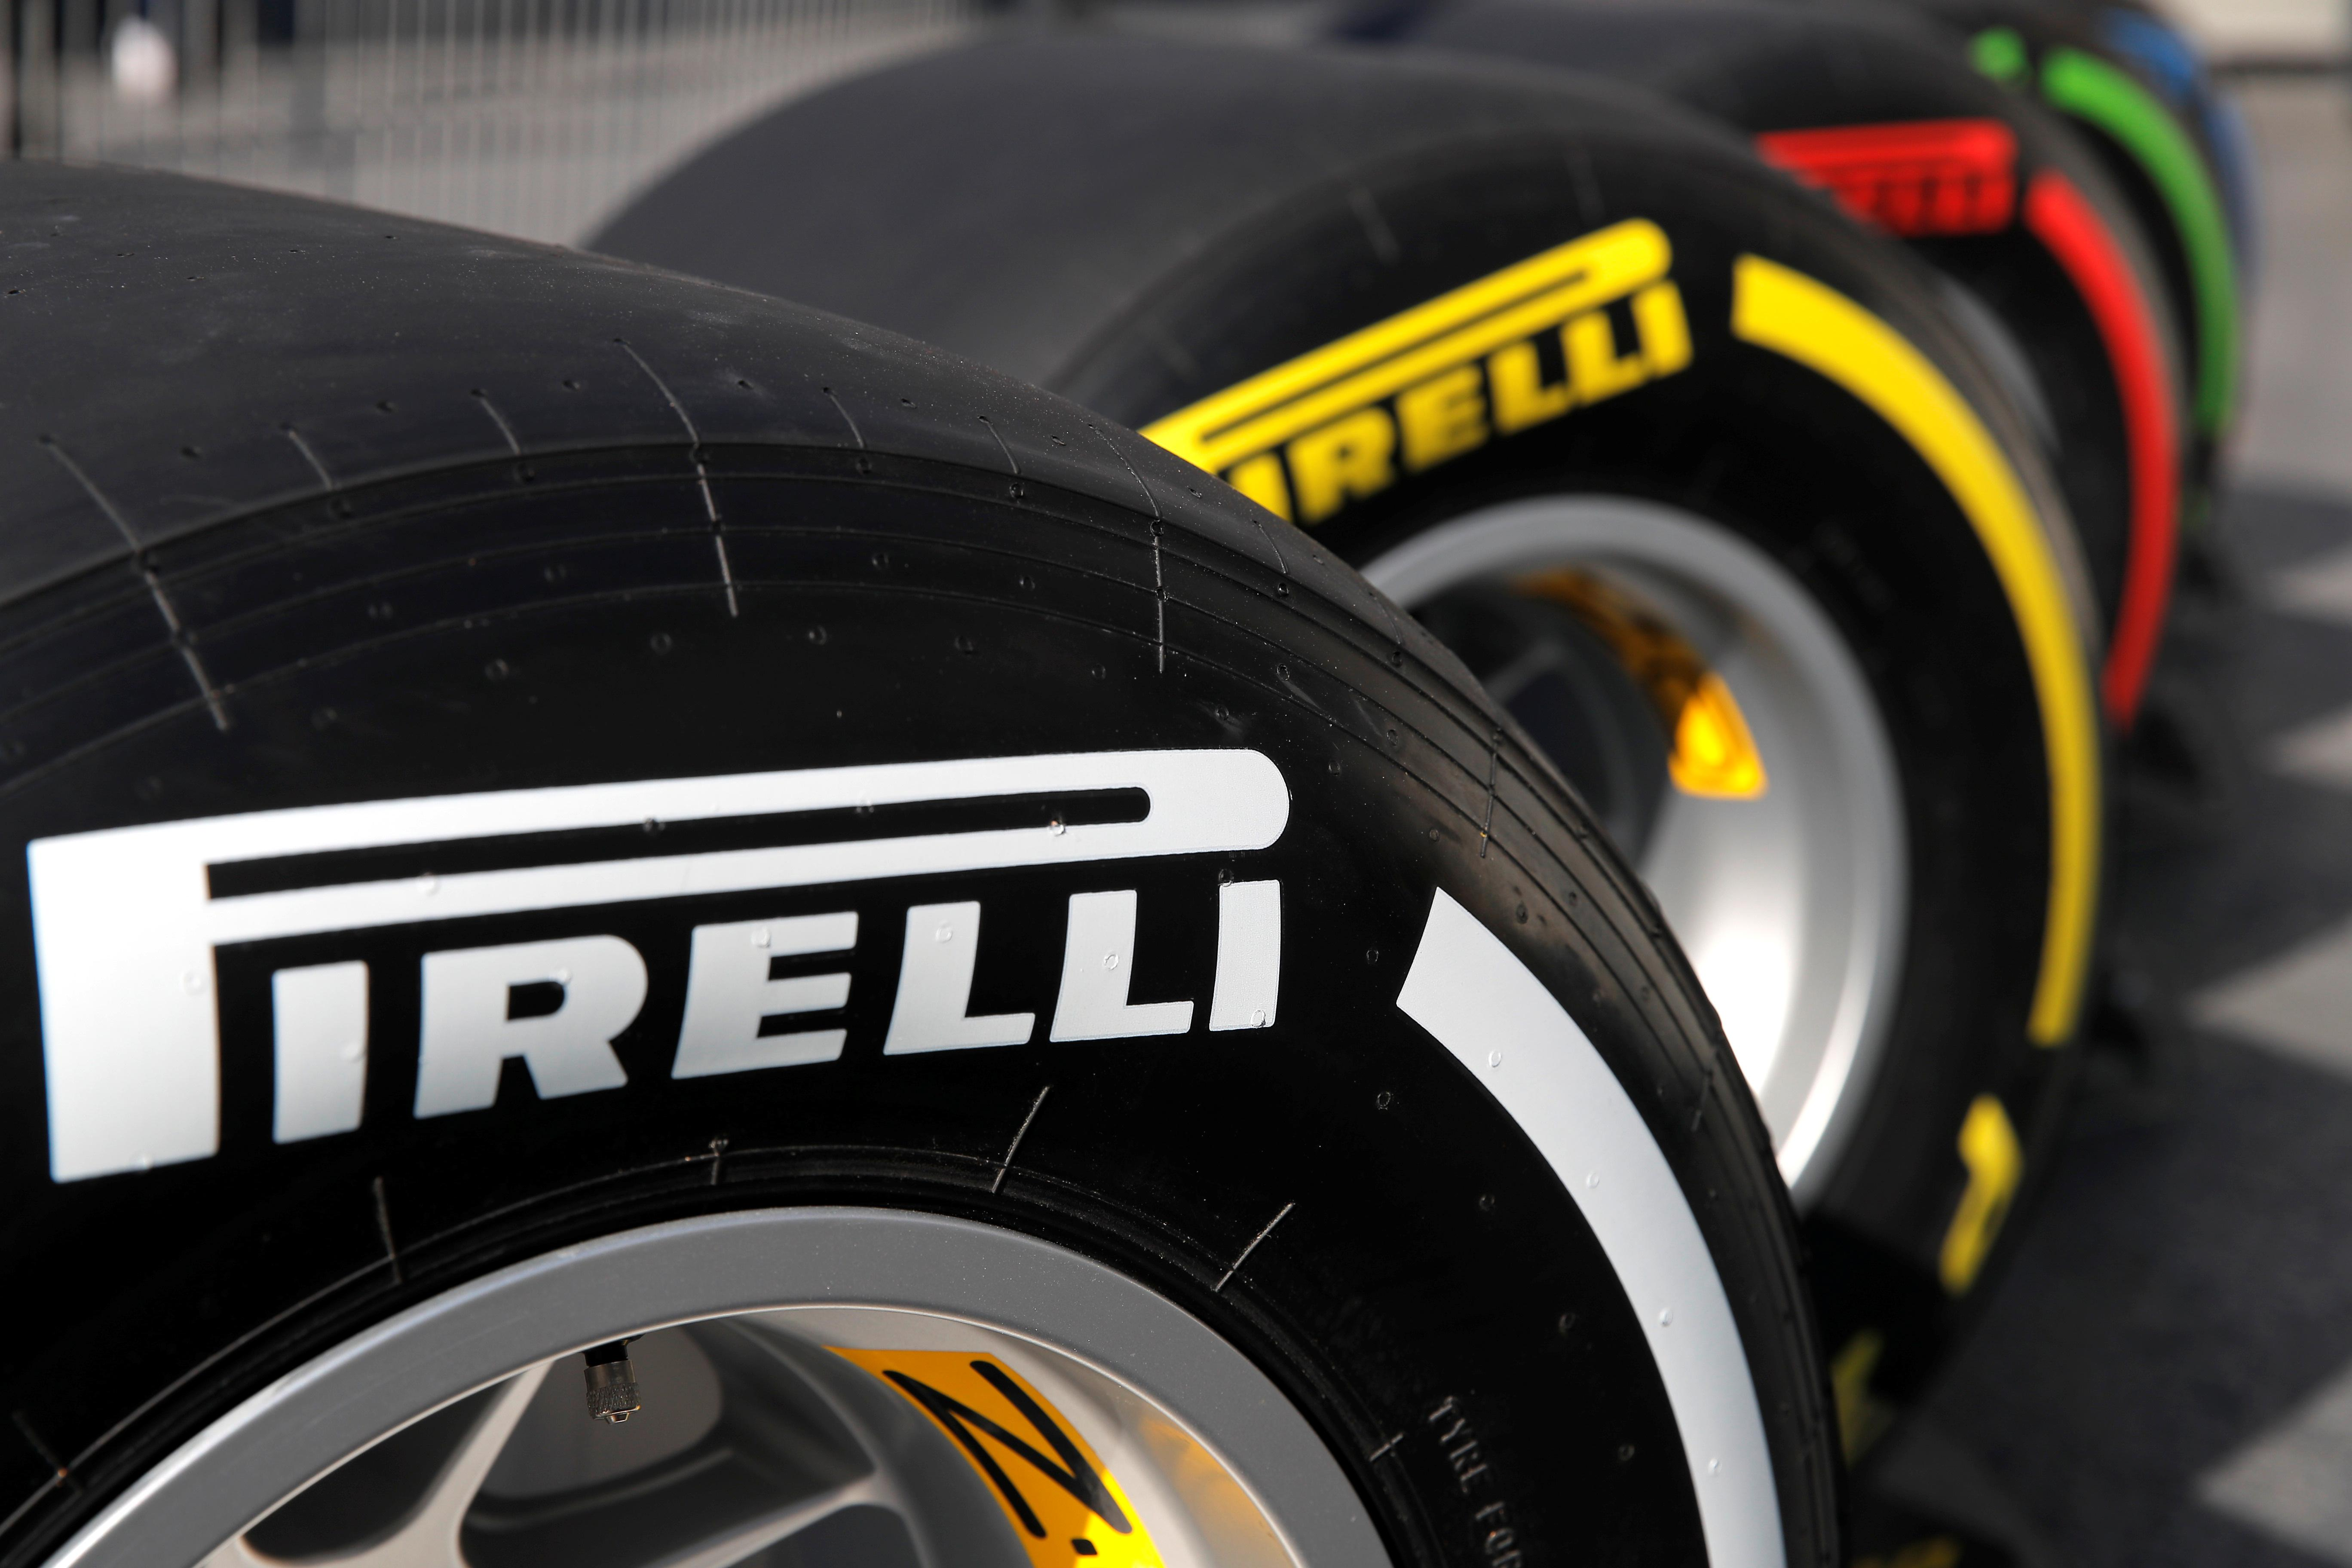 F1 teams vote to stick with existing Pirelli tyres for 2020